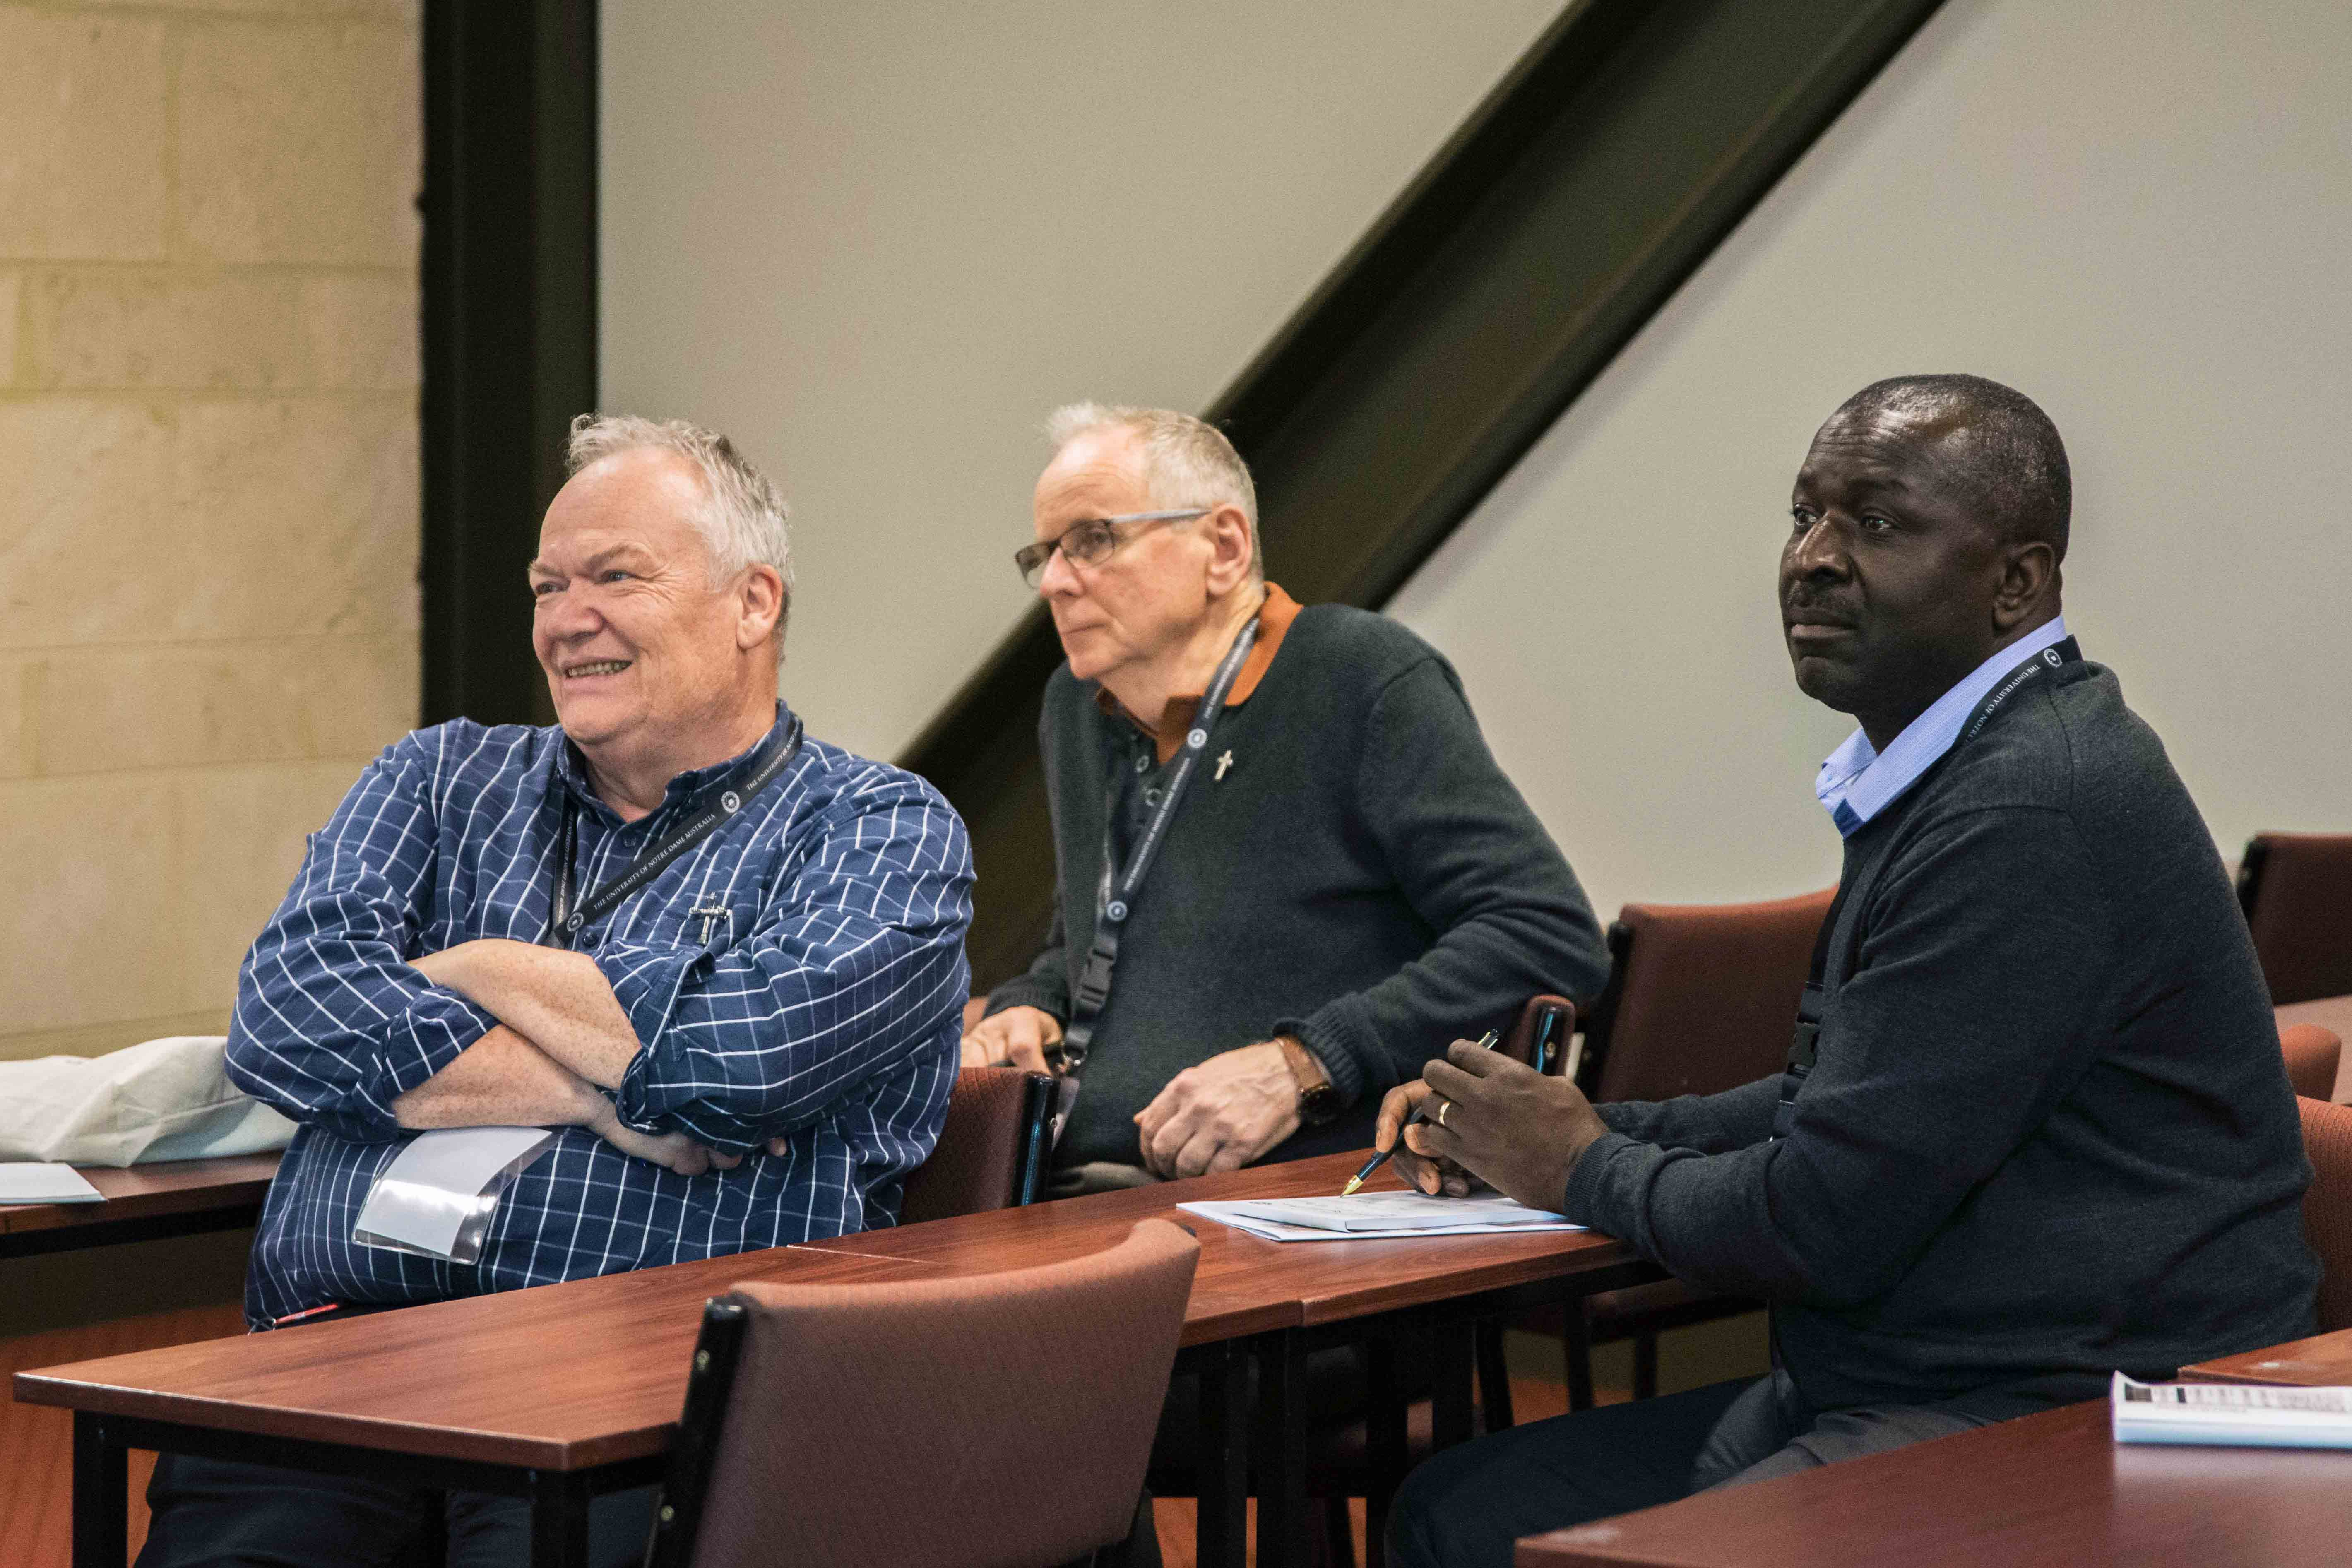 The Deacons Conference 2019 was an important opportunity for Australia's deacons to gather in fellowship. Photo: Matthew Lau.